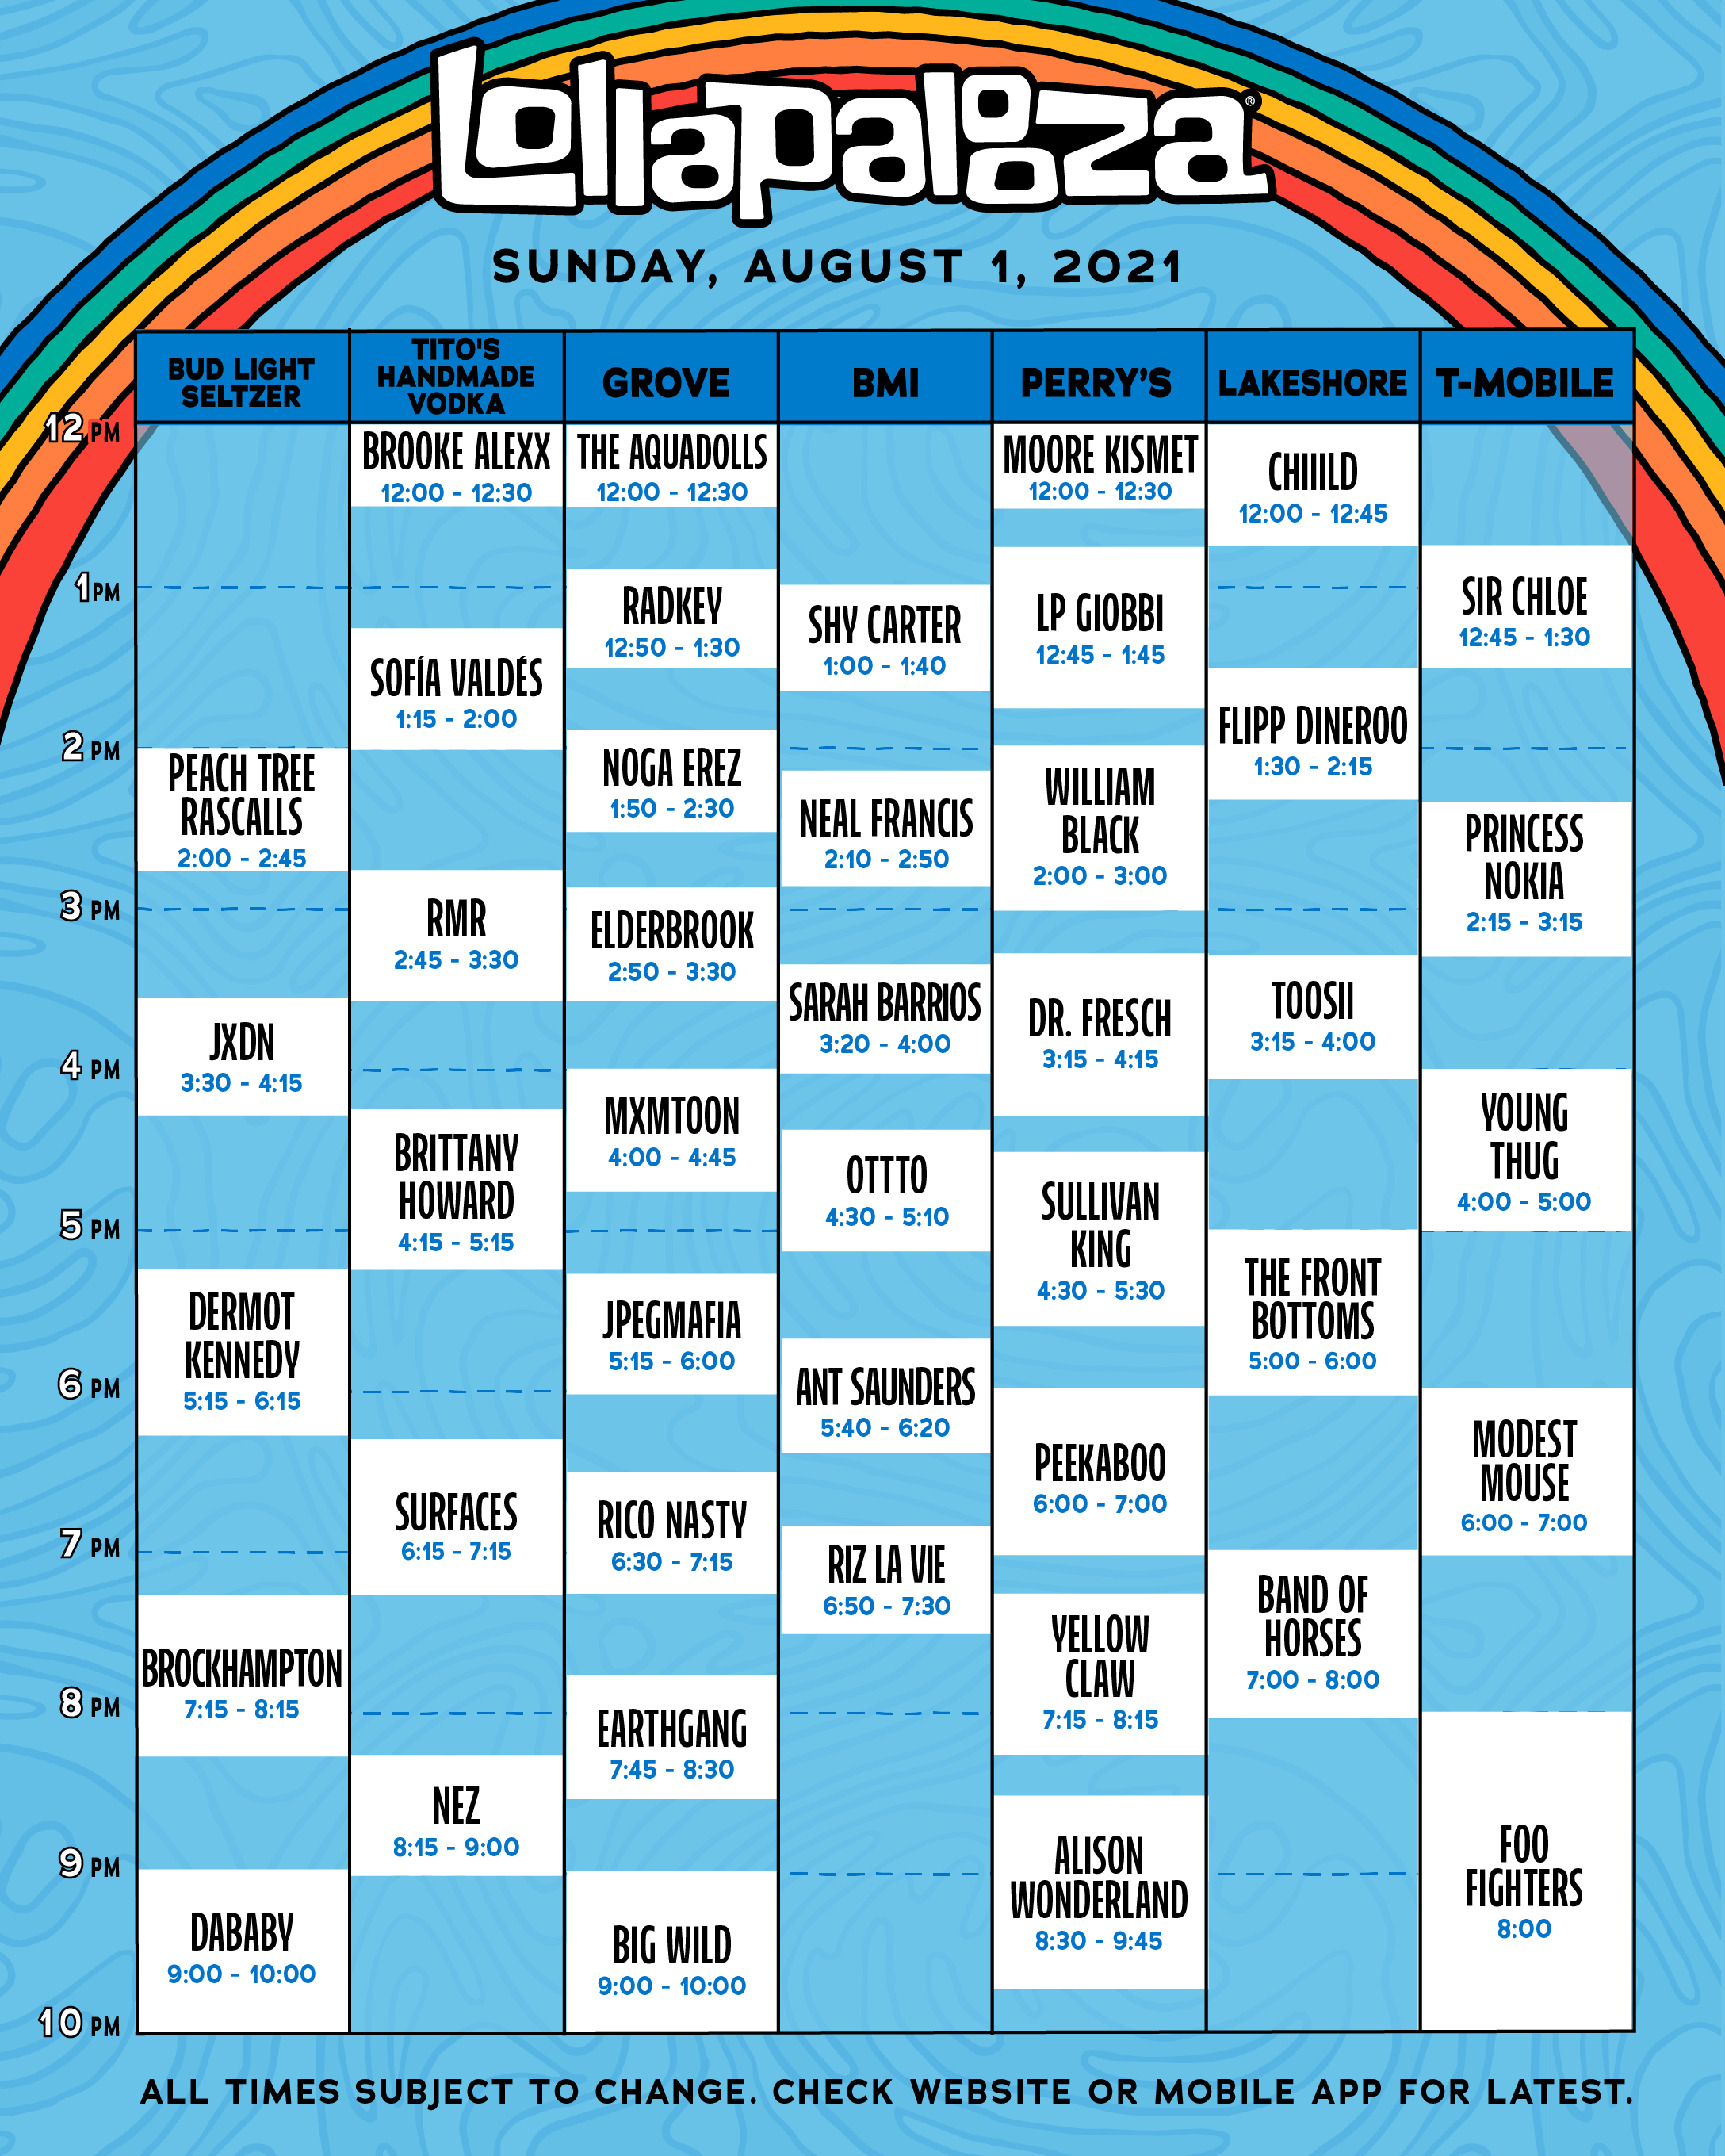 Lollapalooza Full 2021 Schedule Announced! 5